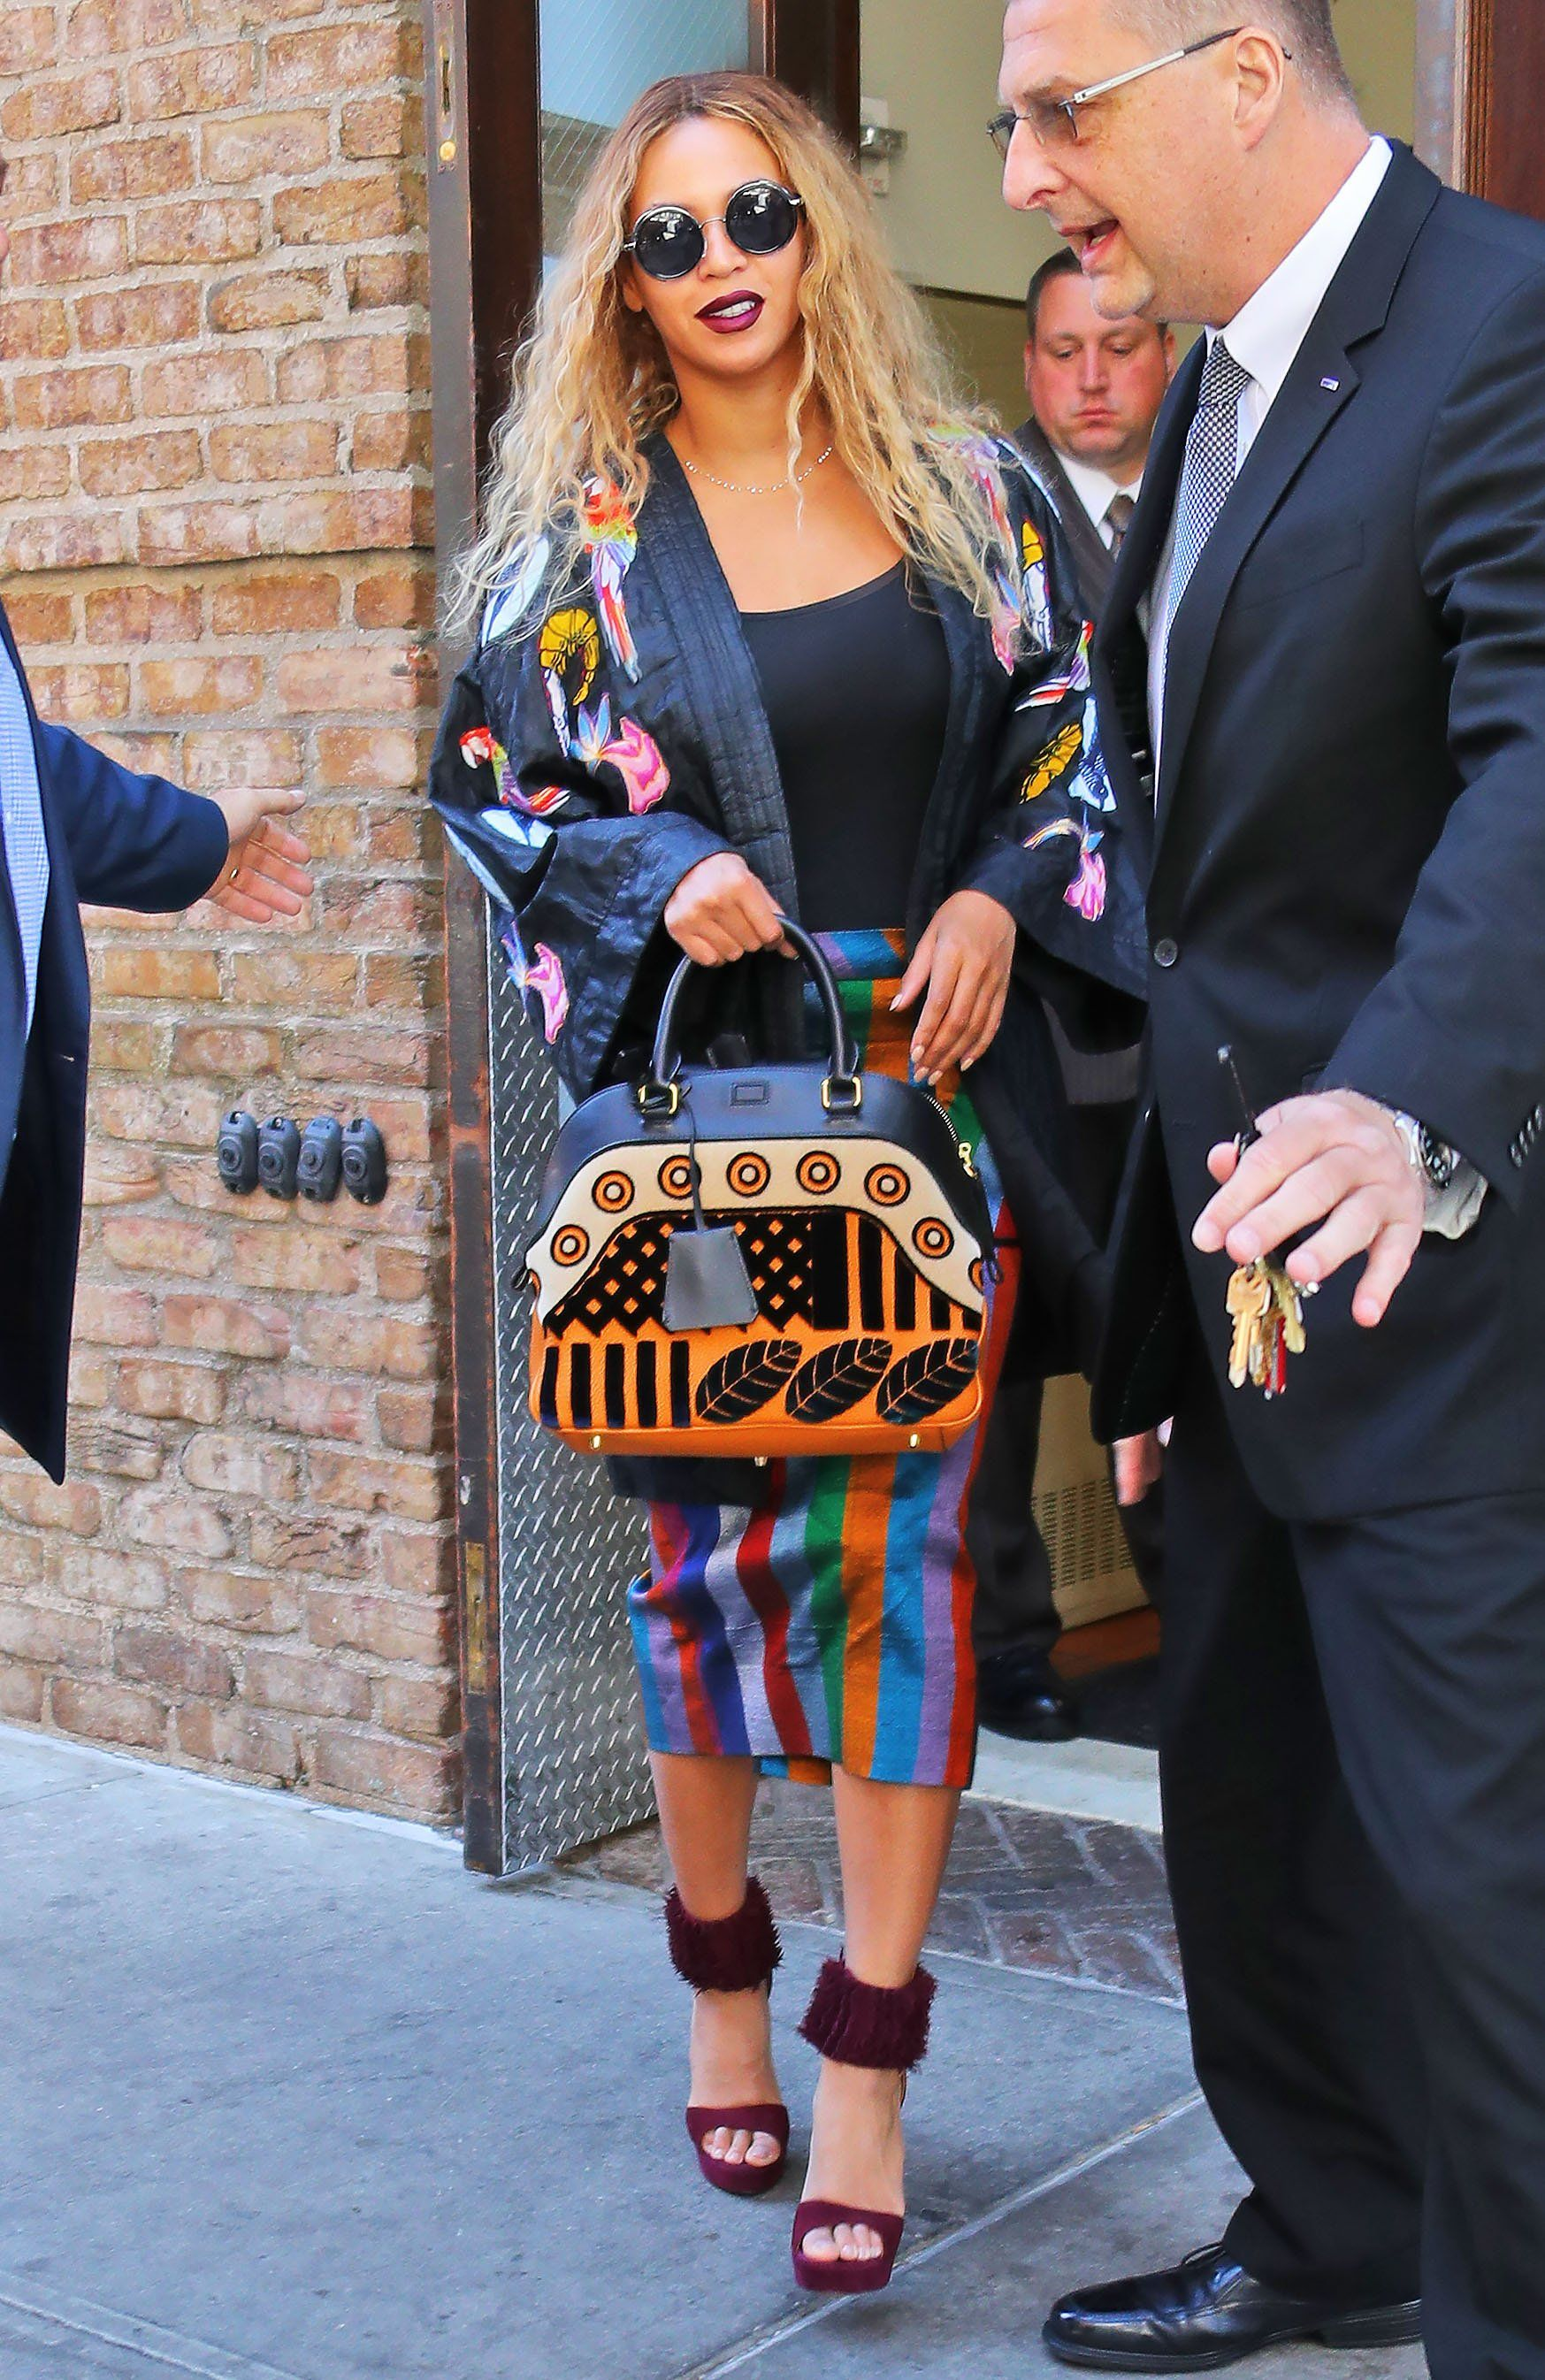 43e557cf8a475 Beyoncé Just Raised the Bar on the Kimono. Very edgy mix and match of  patterns...so cool.